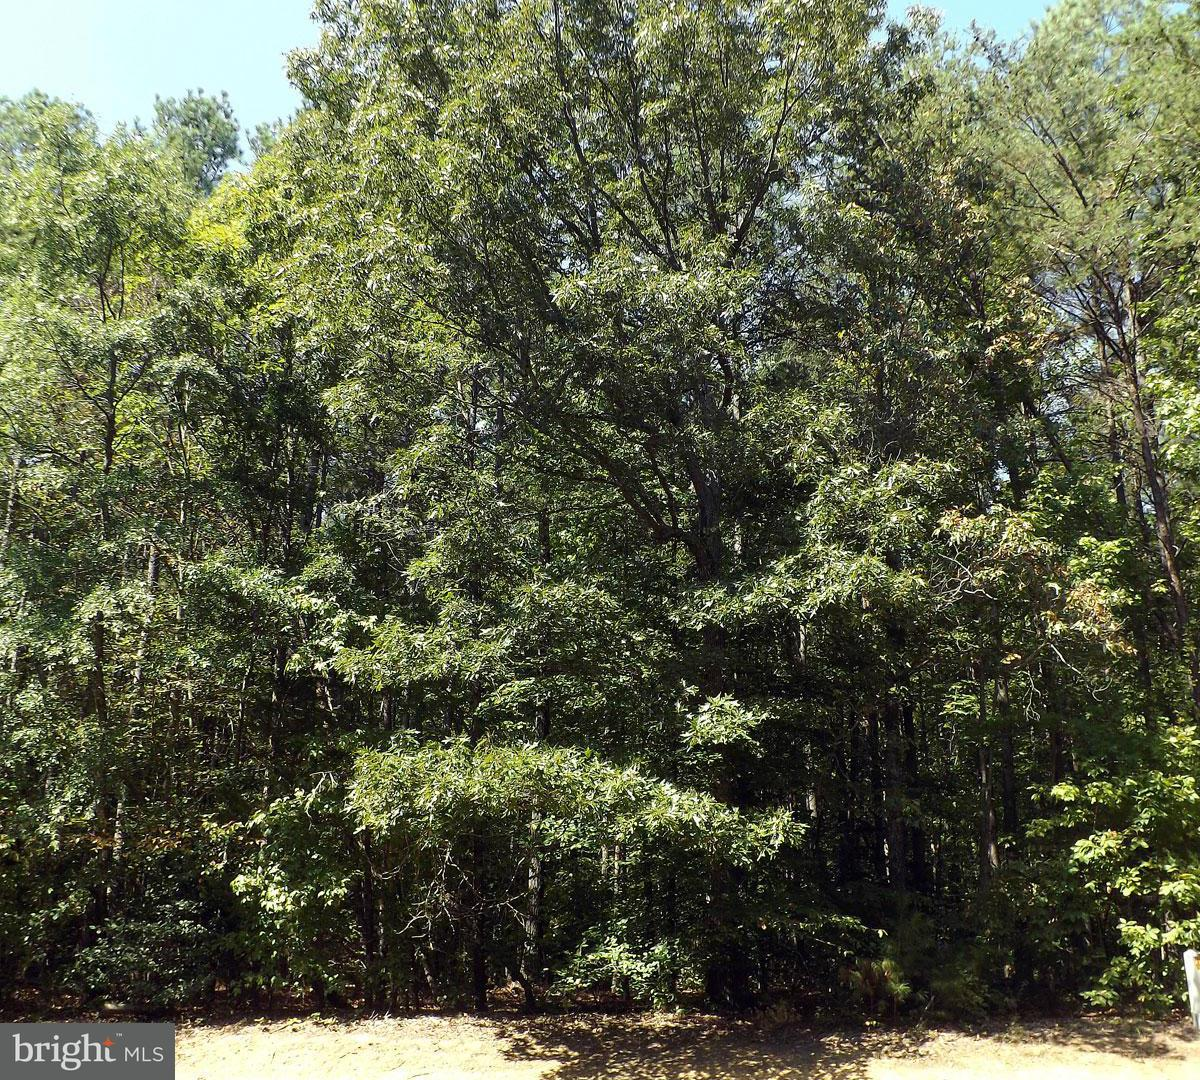 Land for Sale at 117 Spruce Dr Mineral, Virginia 23117 United States